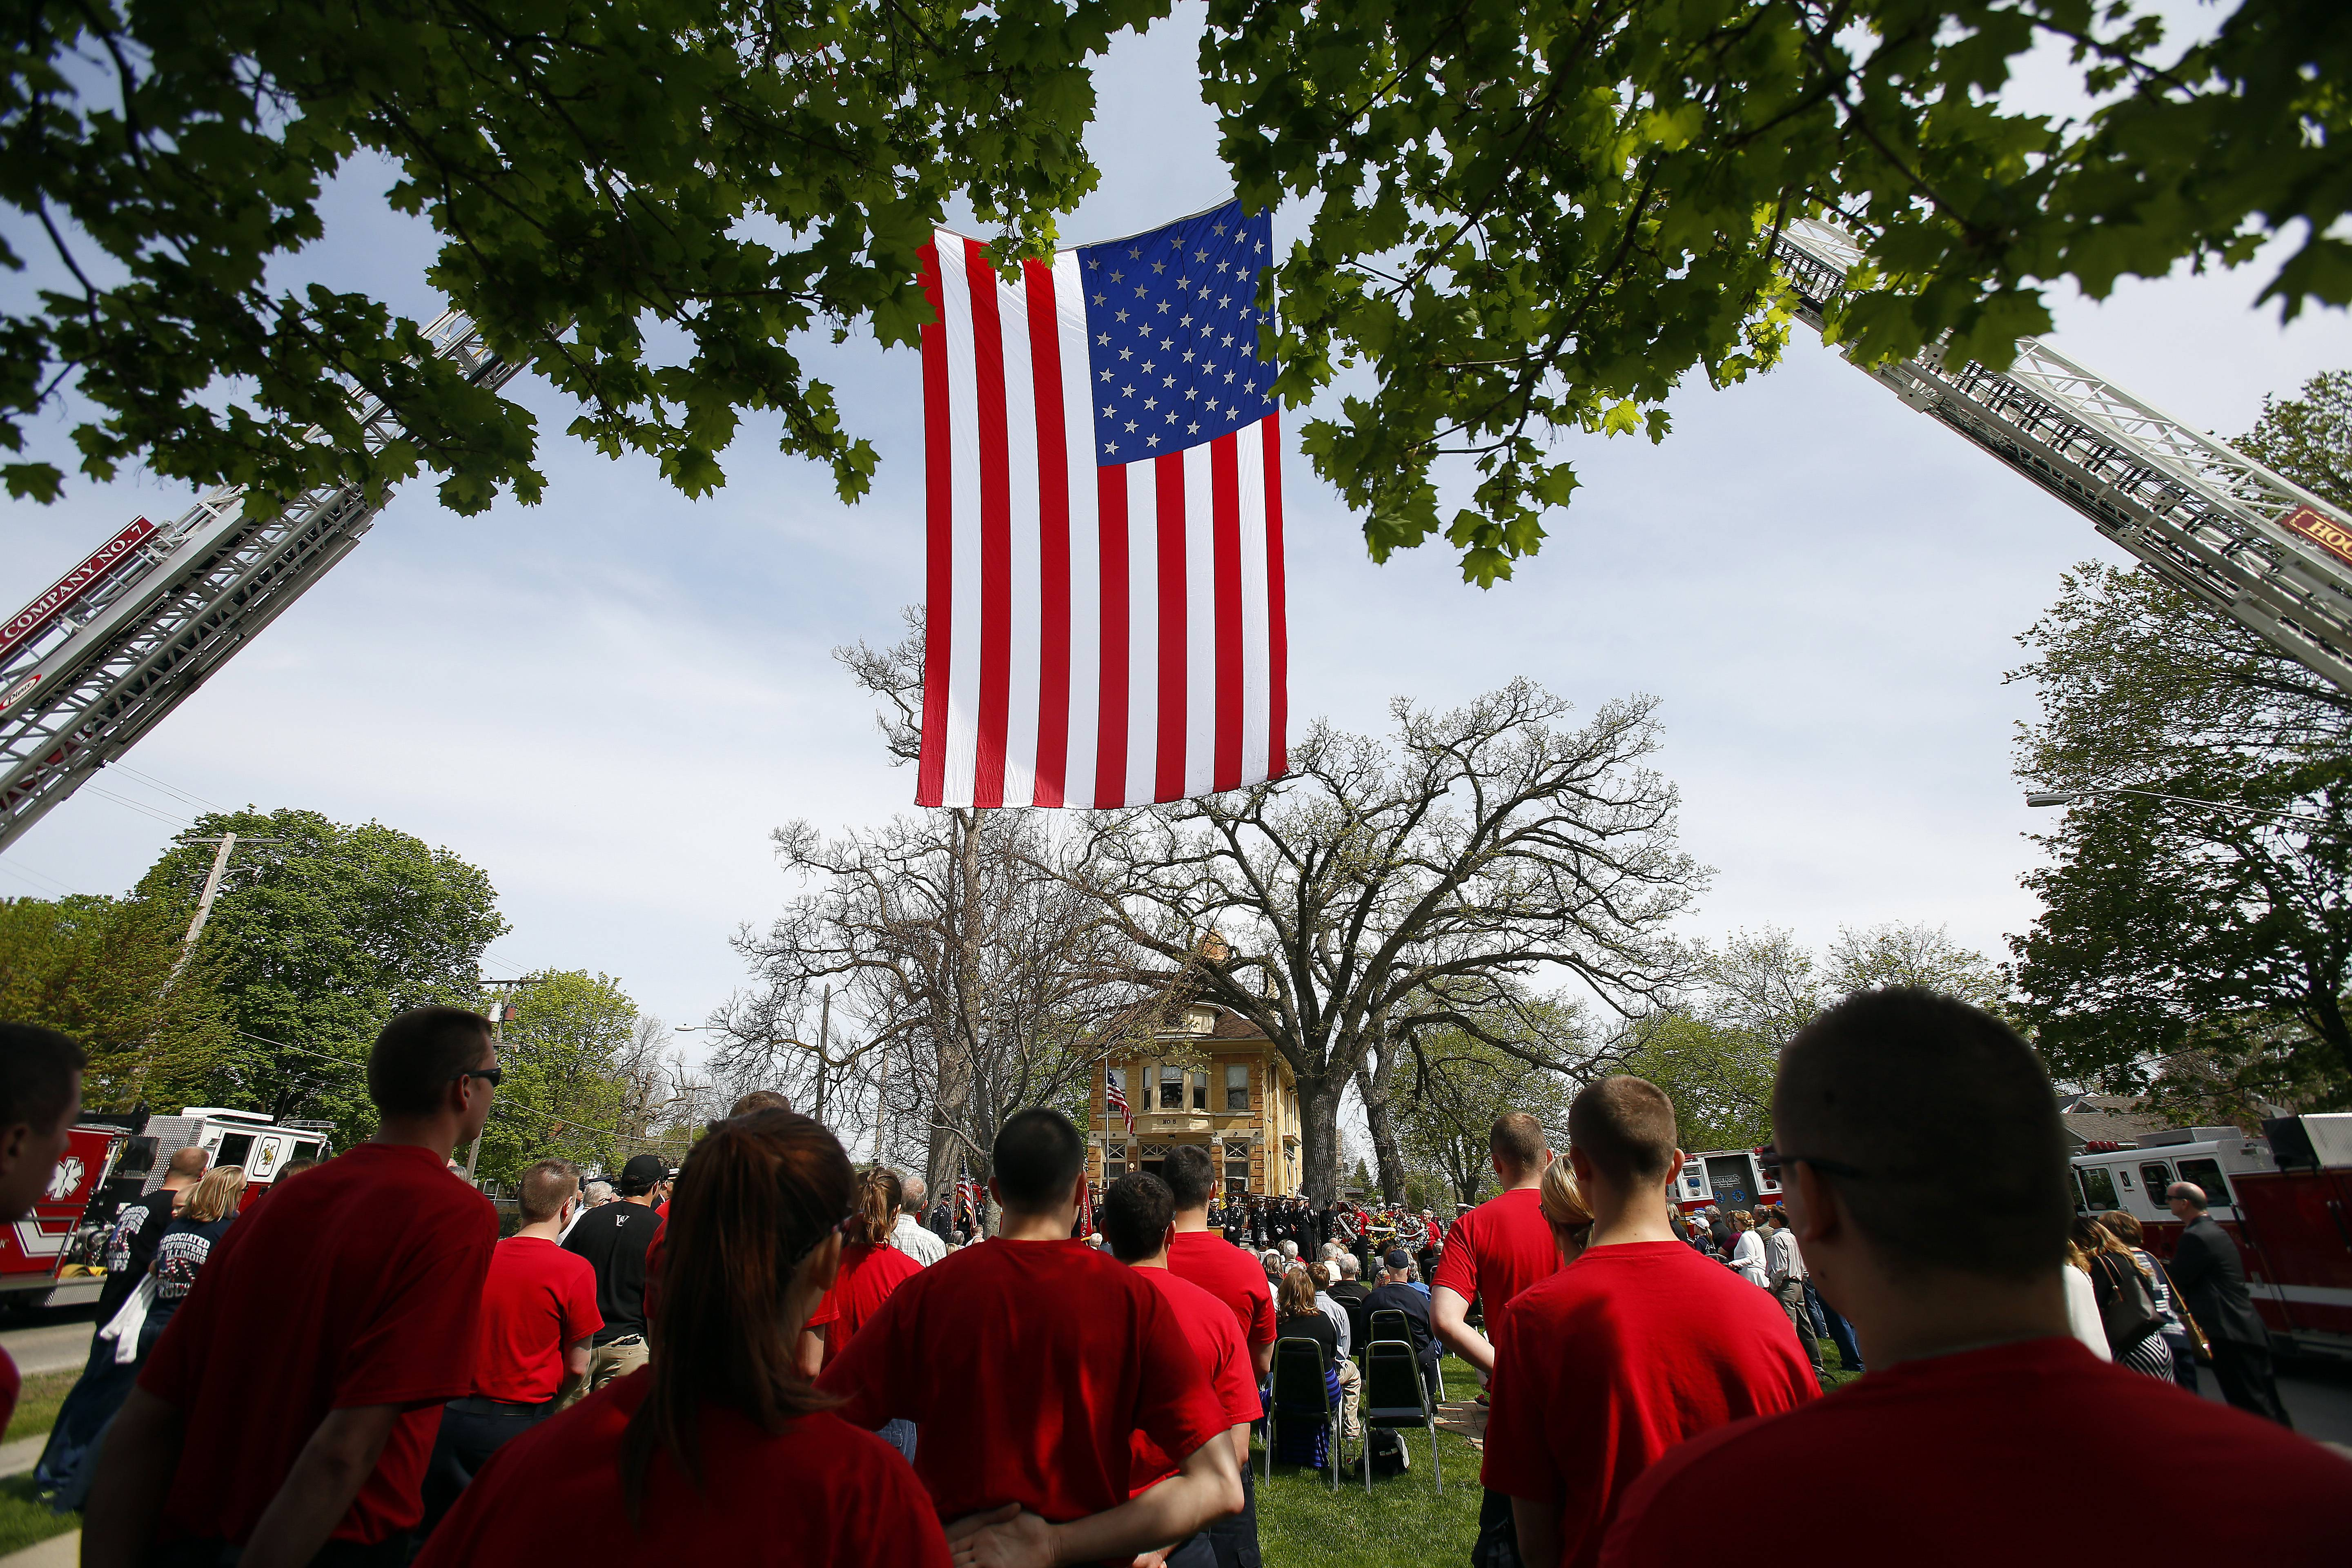 A giant American flag is held aloft over the crowd by two ladder trucks during the annual Elgin Area Firefighters Memorial Service Saturday at George Van De Voorde Firefighter Memorial Park and Elgin Fire Barn No. 5 Museum.